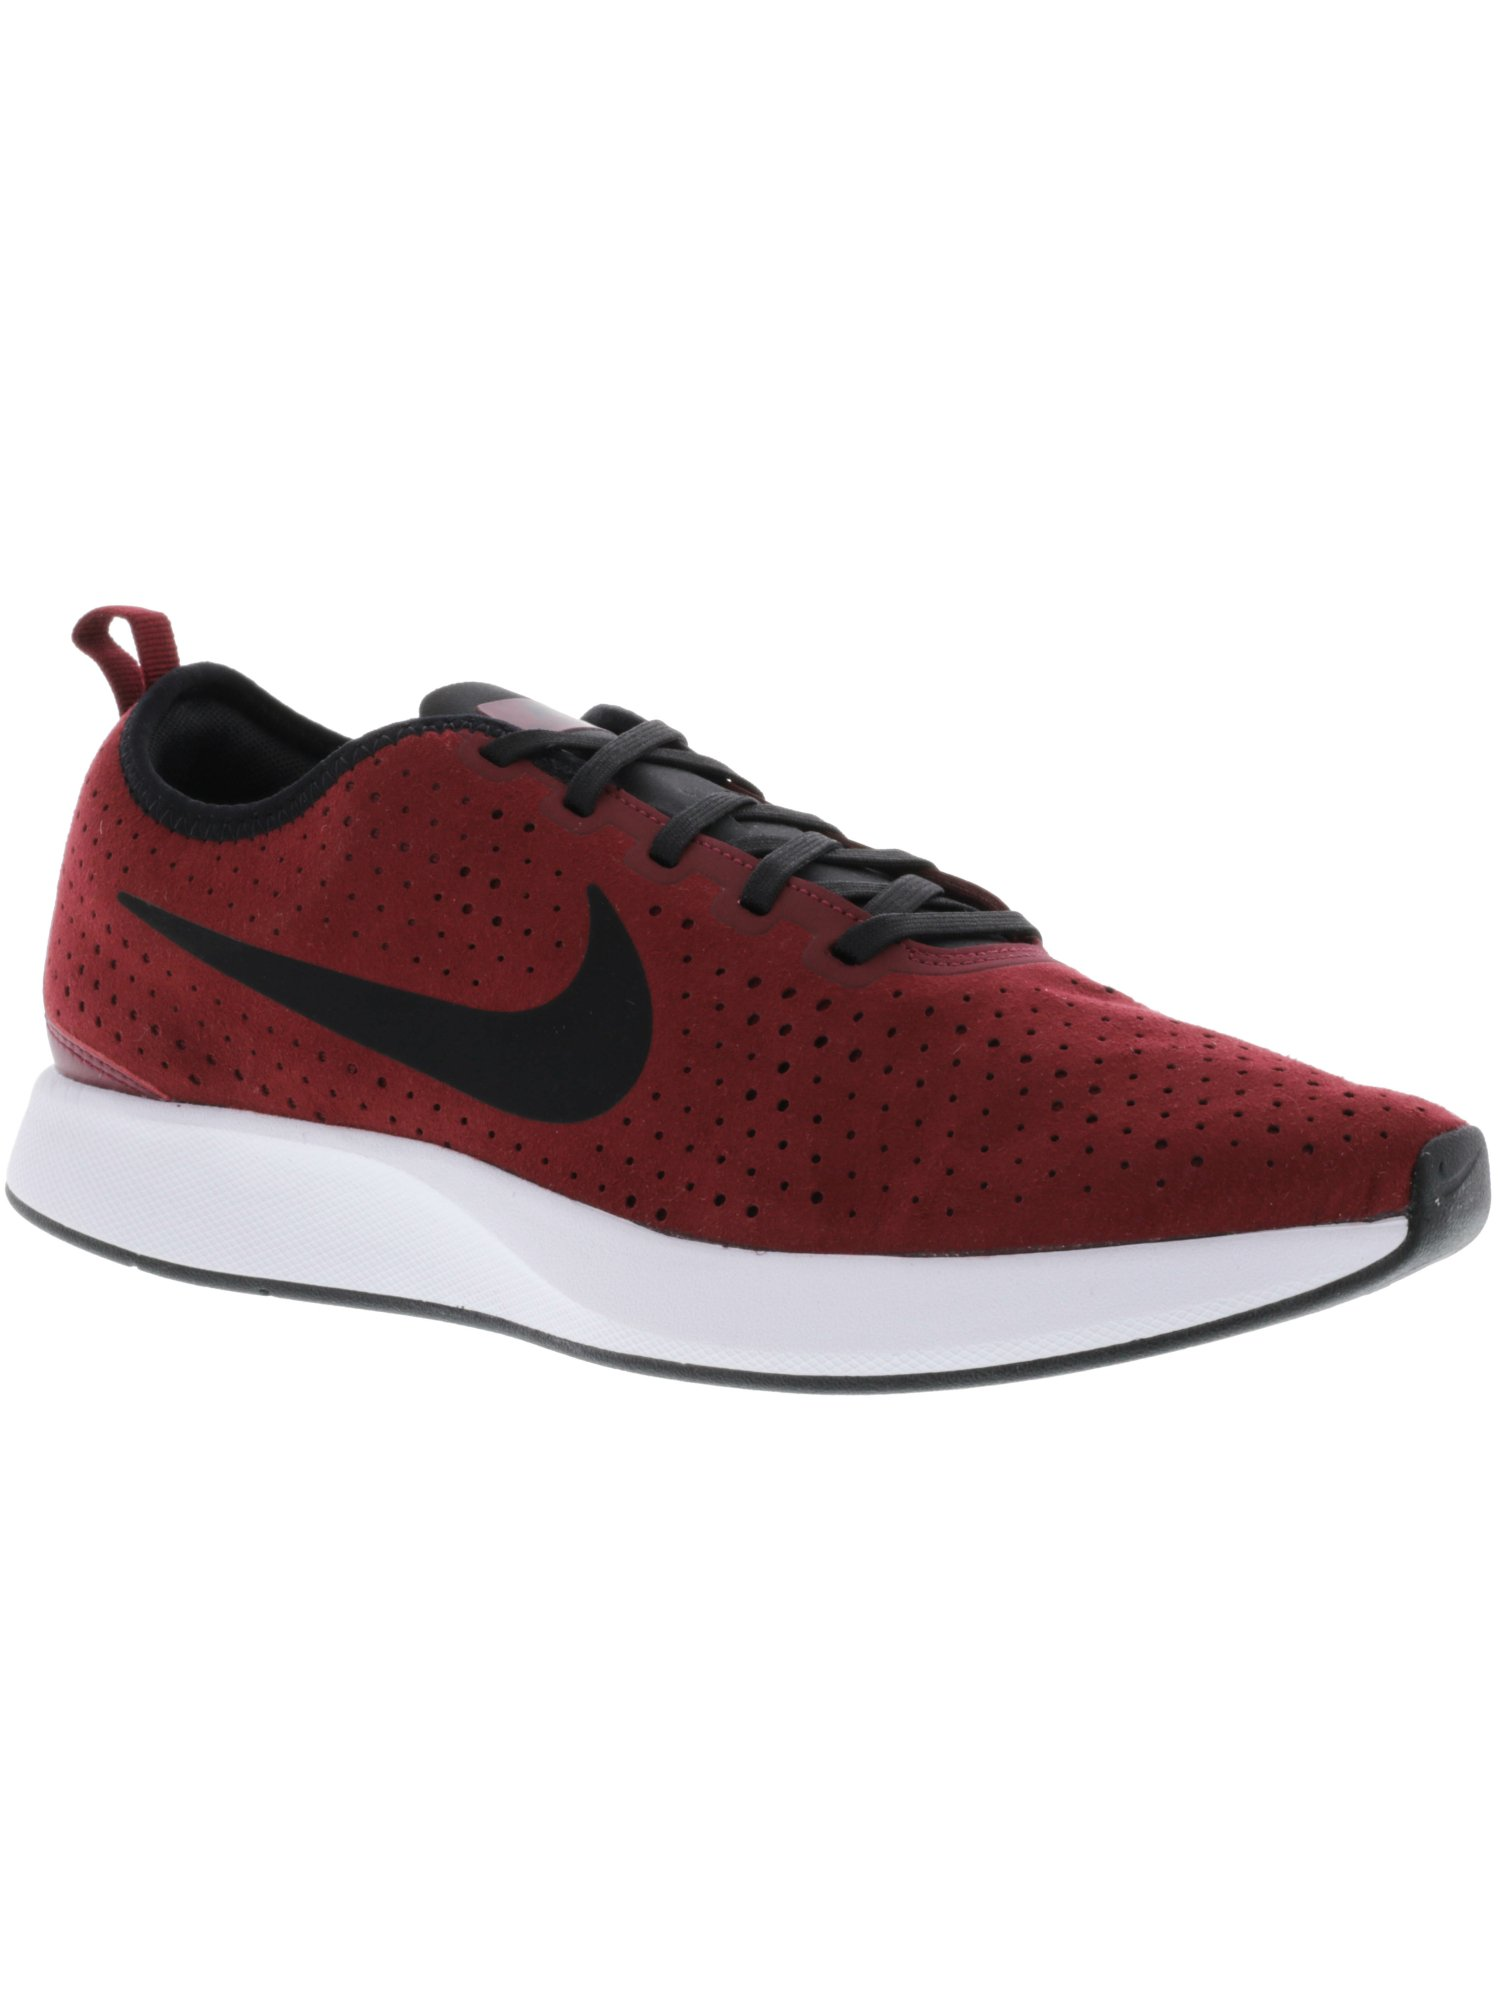 Homme-Nike-Dualtone-Racer-PRM-Ankle-high-Fashion-Sneaker miniature 6